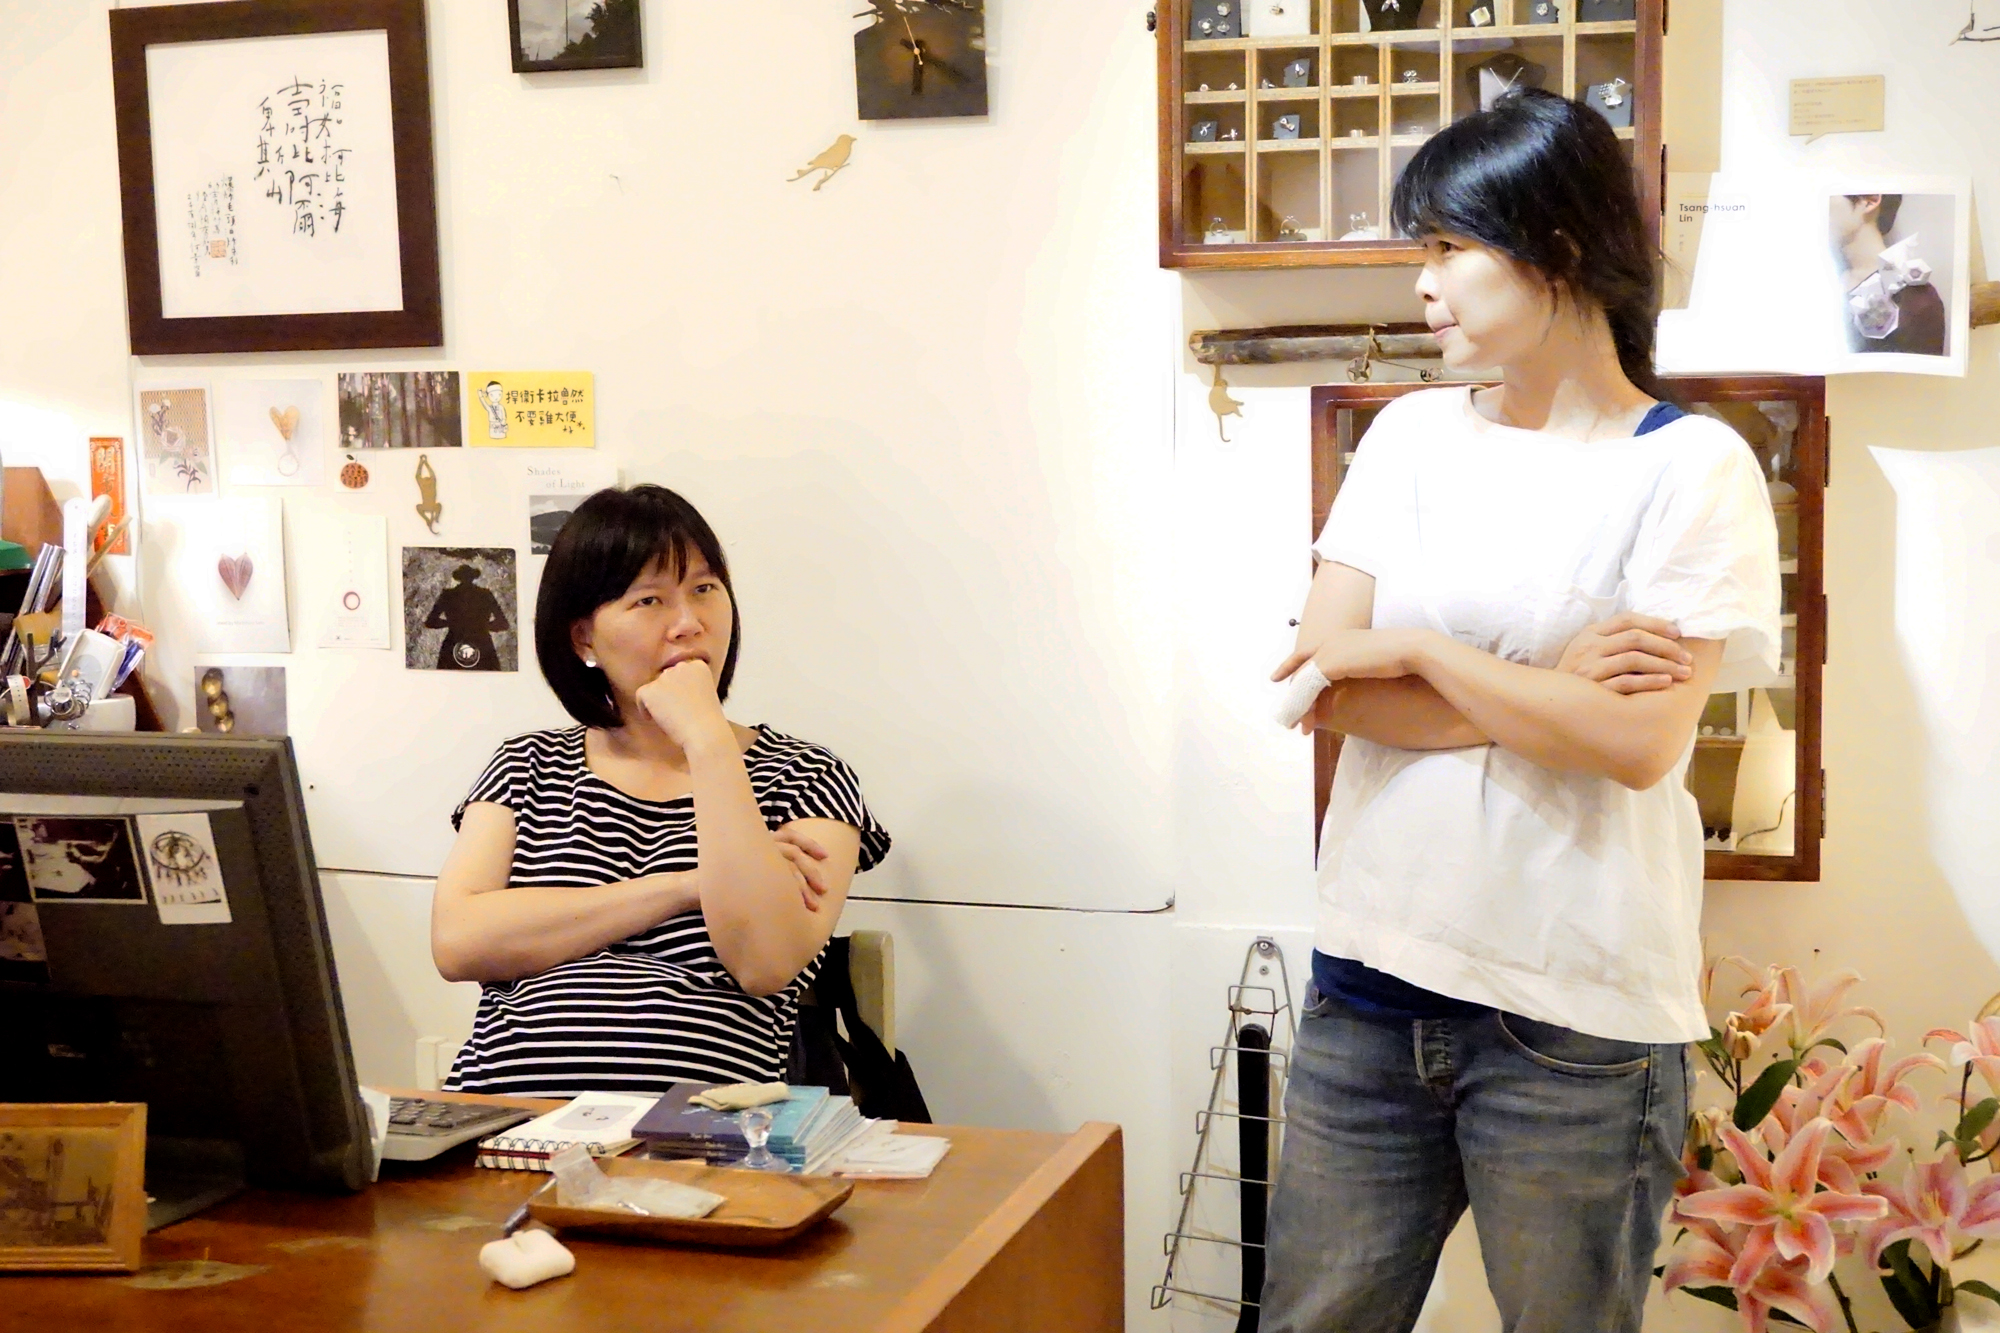 Peggy (on the left) and Ting-Ting (on the right) thinking hard about a funny/interesting story with a client